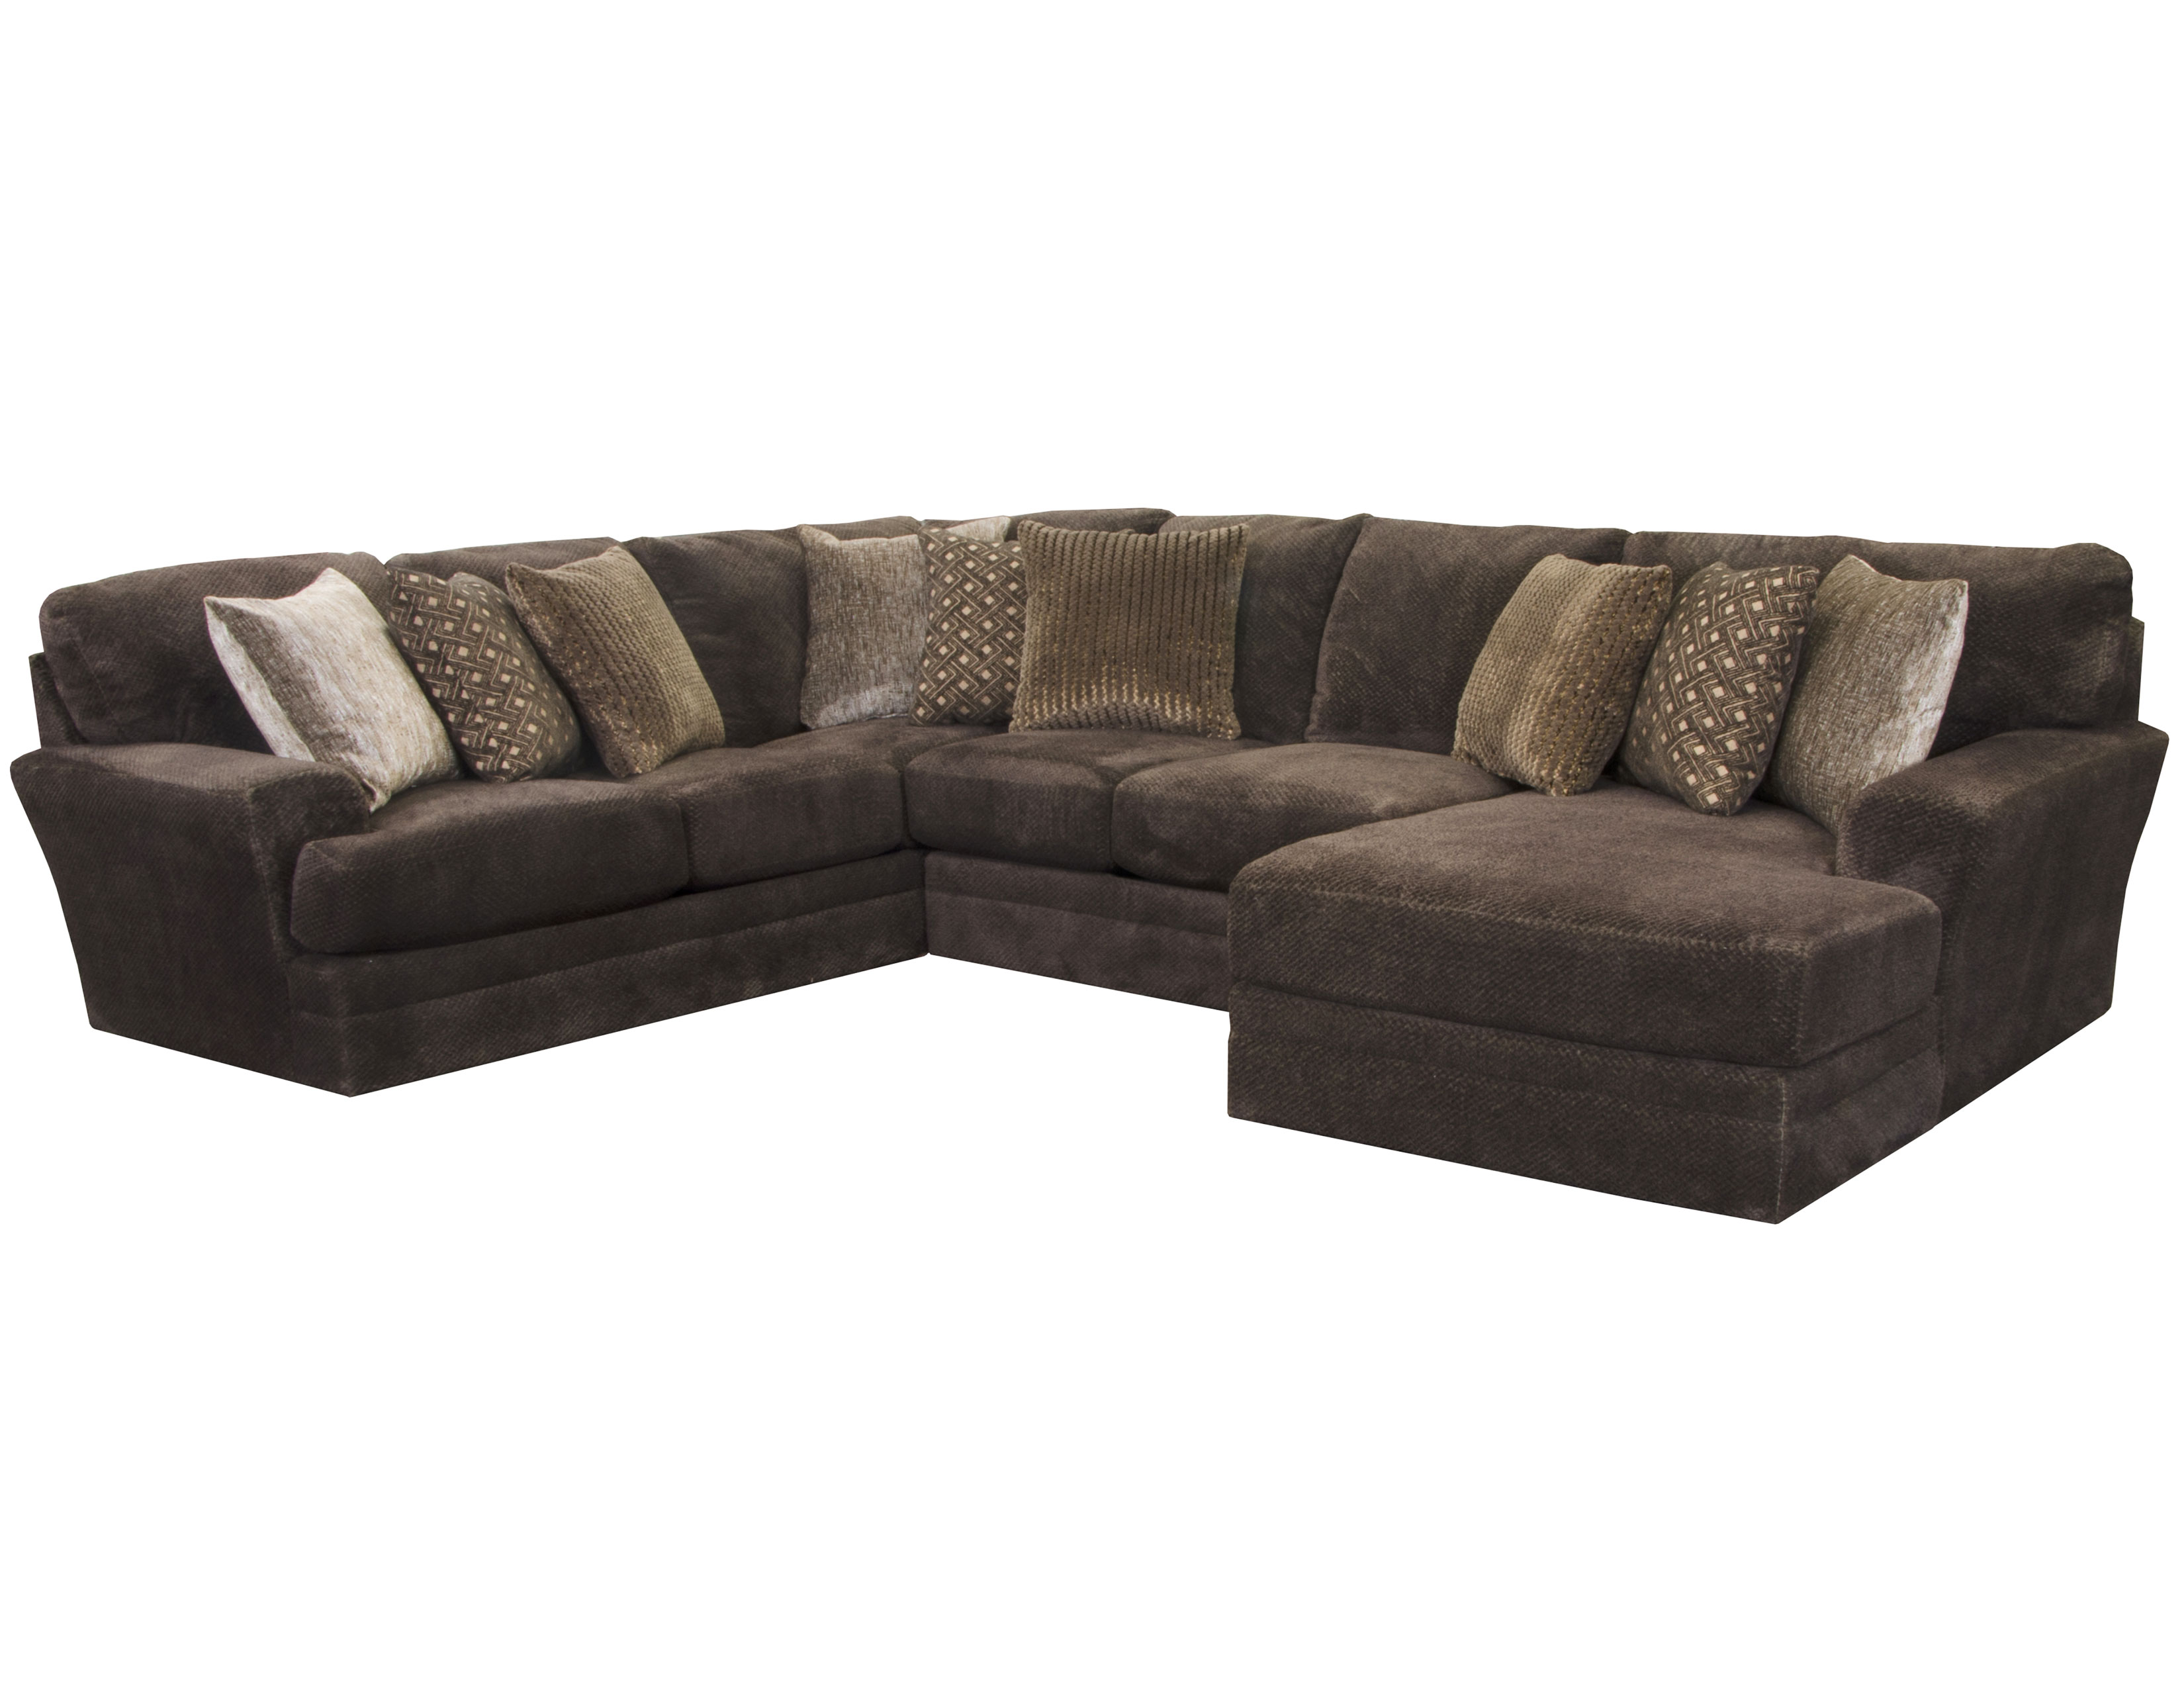 Stupendous Mammoth Sectional In Chocolate 15 Pieces Sofas And Sectionals Creativecarmelina Interior Chair Design Creativecarmelinacom